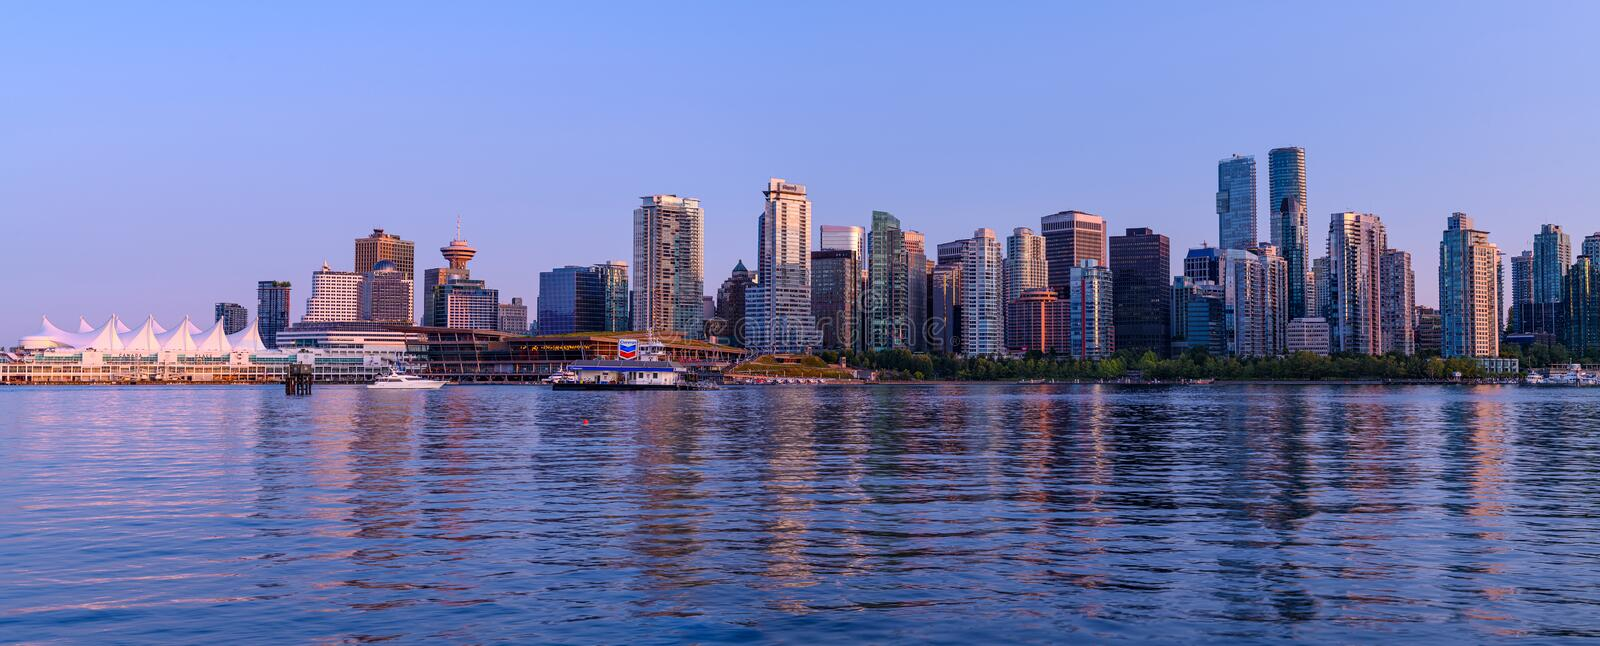 Panoramic view of Vancouver city by night royalty free stock images